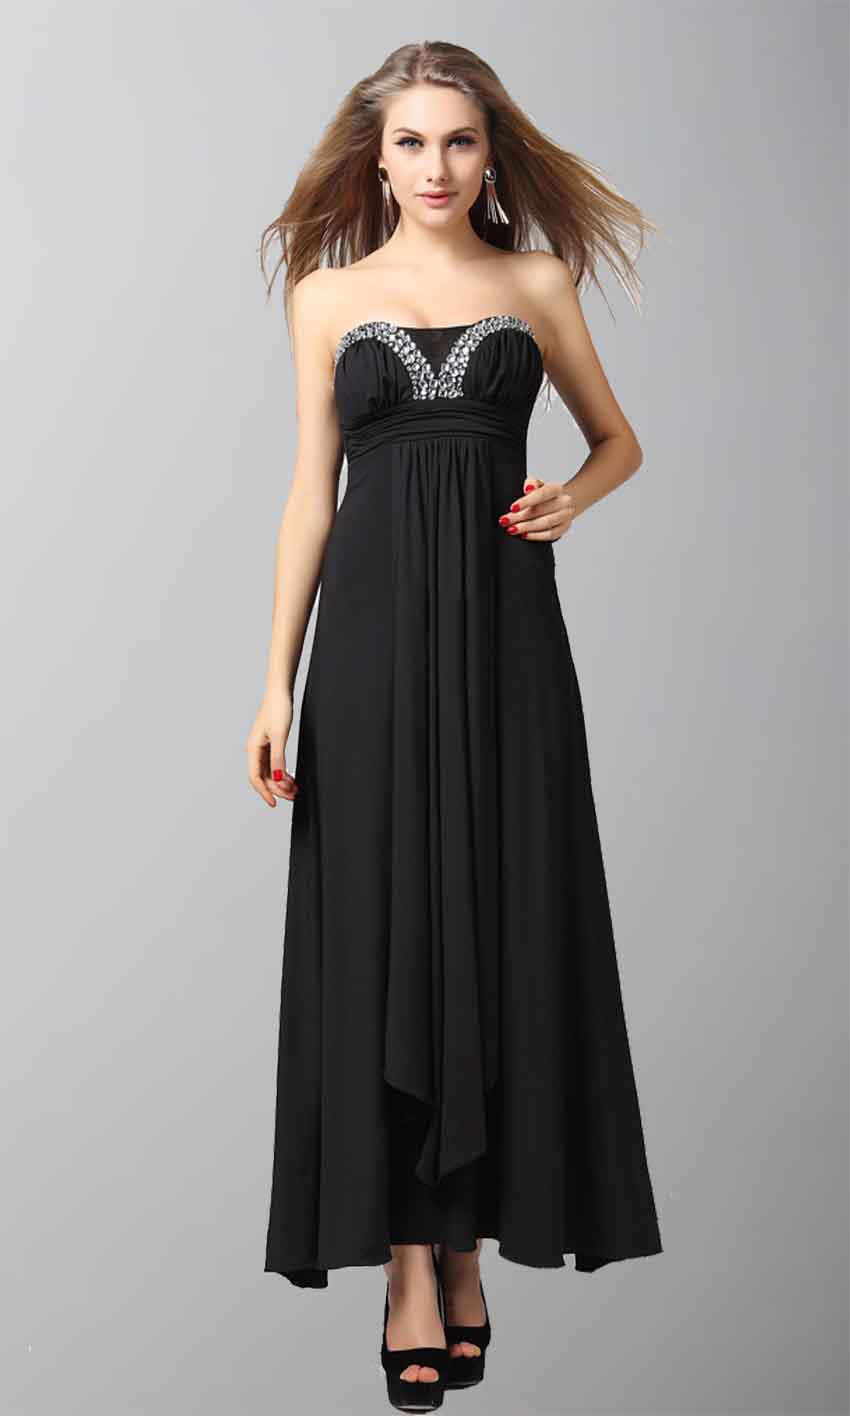 Black Sexy Dimensional Level Folds Evening Dress KSP050 [KSP050] - £98.00 : Cheap Prom Dresses Uk, Bridesmaid Dresses, 2014 Prom & Evening Dresses, Look for cheap elegant prom dresses 2014, cocktail gowns, or dresses for special occasions? kissprom.co.uk offers various bridesmaid dresses, evening dress, free shipping to UK etc.